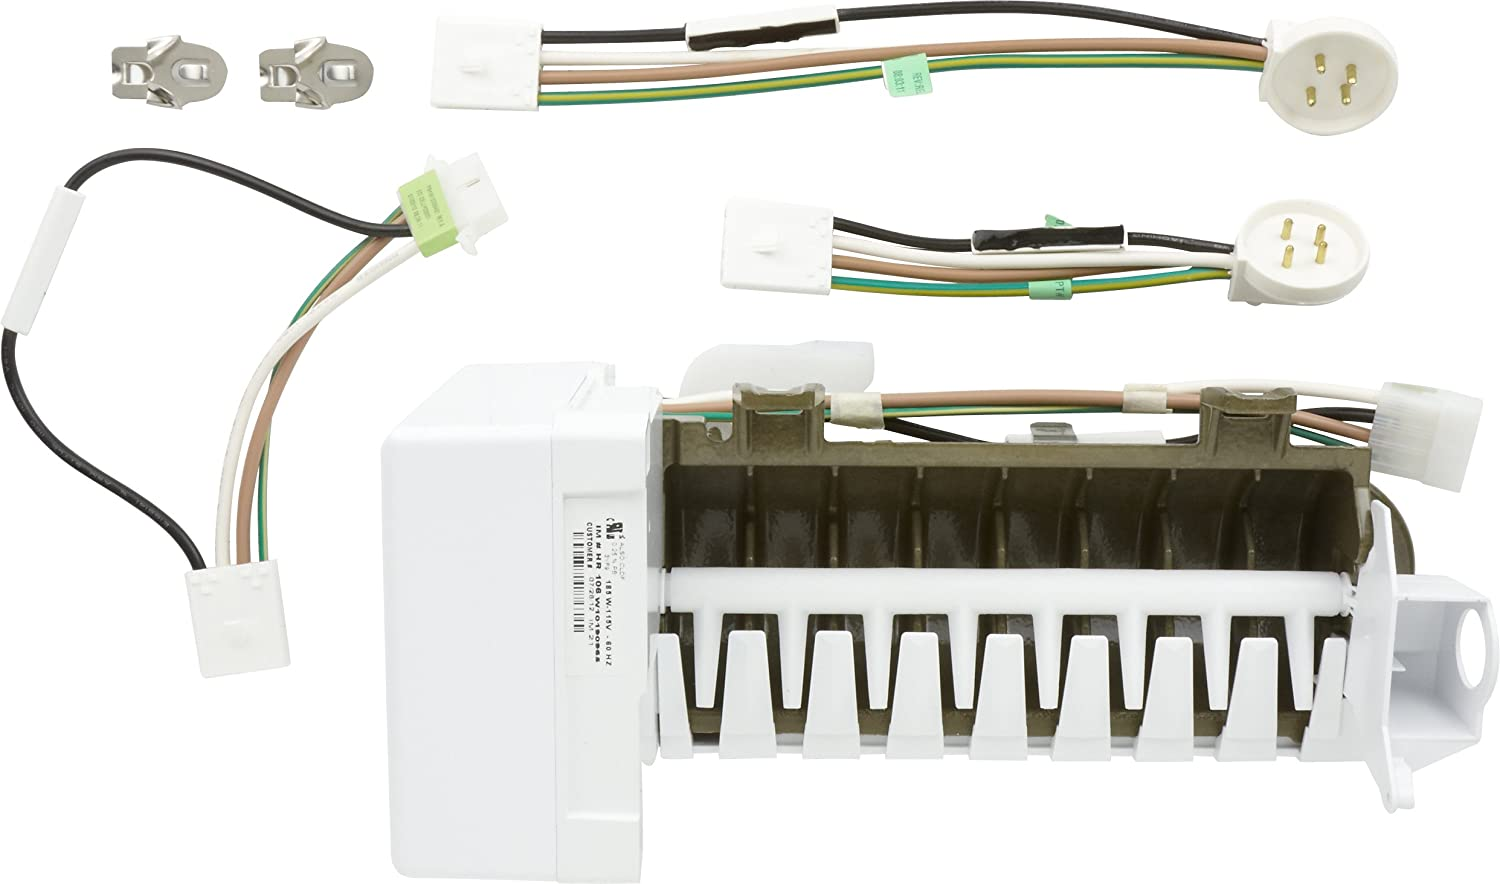 Whirlpool 4317943 Ice Maker Assembly Home Improvement Kenmore 80 Series Dryer Fuse Diagram Free Download Wiring